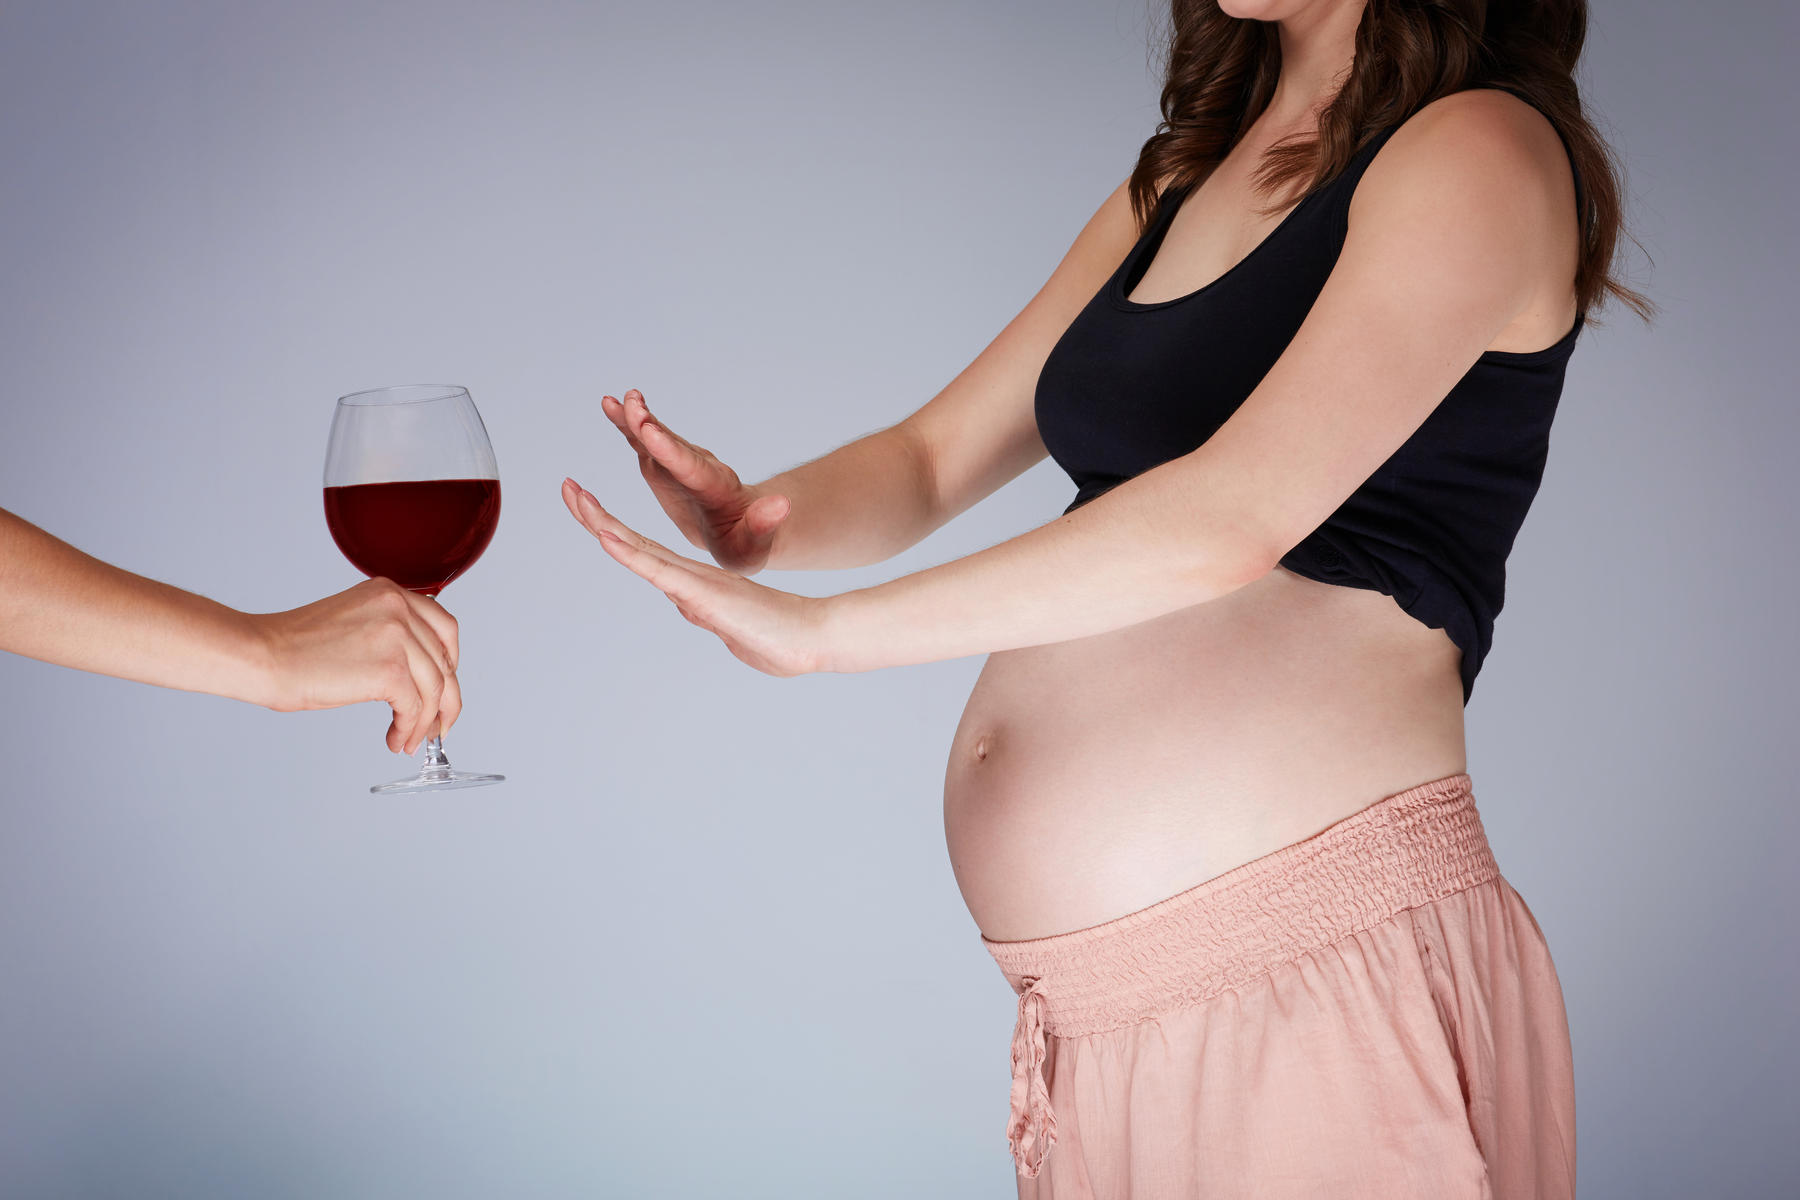 What to Know About Alcohol Consumption During Pregnancy